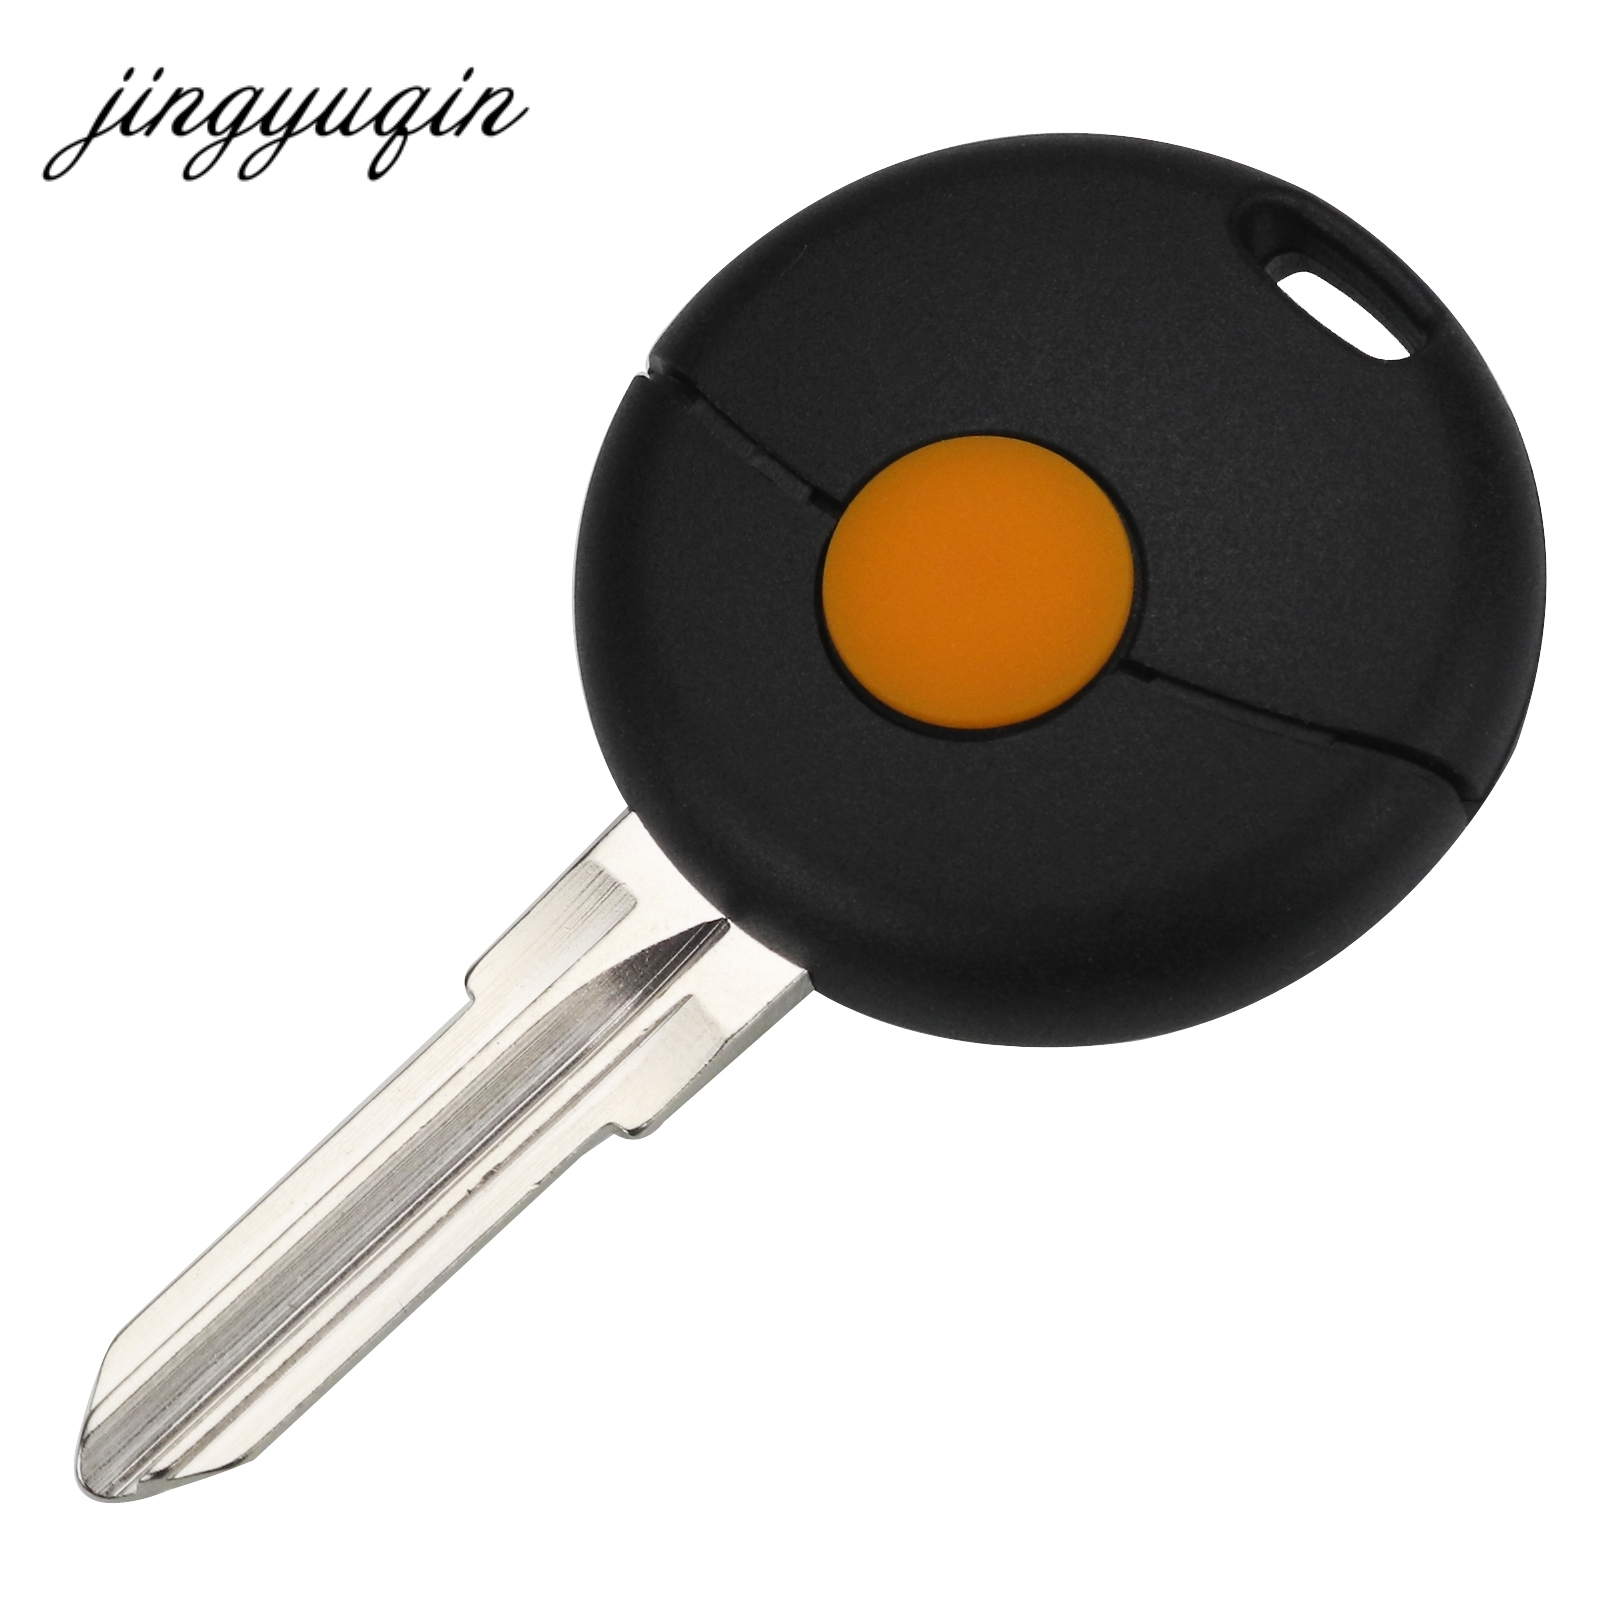 jingyuqin 1 Button Remote Car Key Shell For Mercedes For Benz Smart Fortwo Cabrio City Cross Fob Case Cover okeytech for mecerdes benz mb smart fortwo forfour city roadster auto remote key fob blade 433mhz 3 button smart card for benz